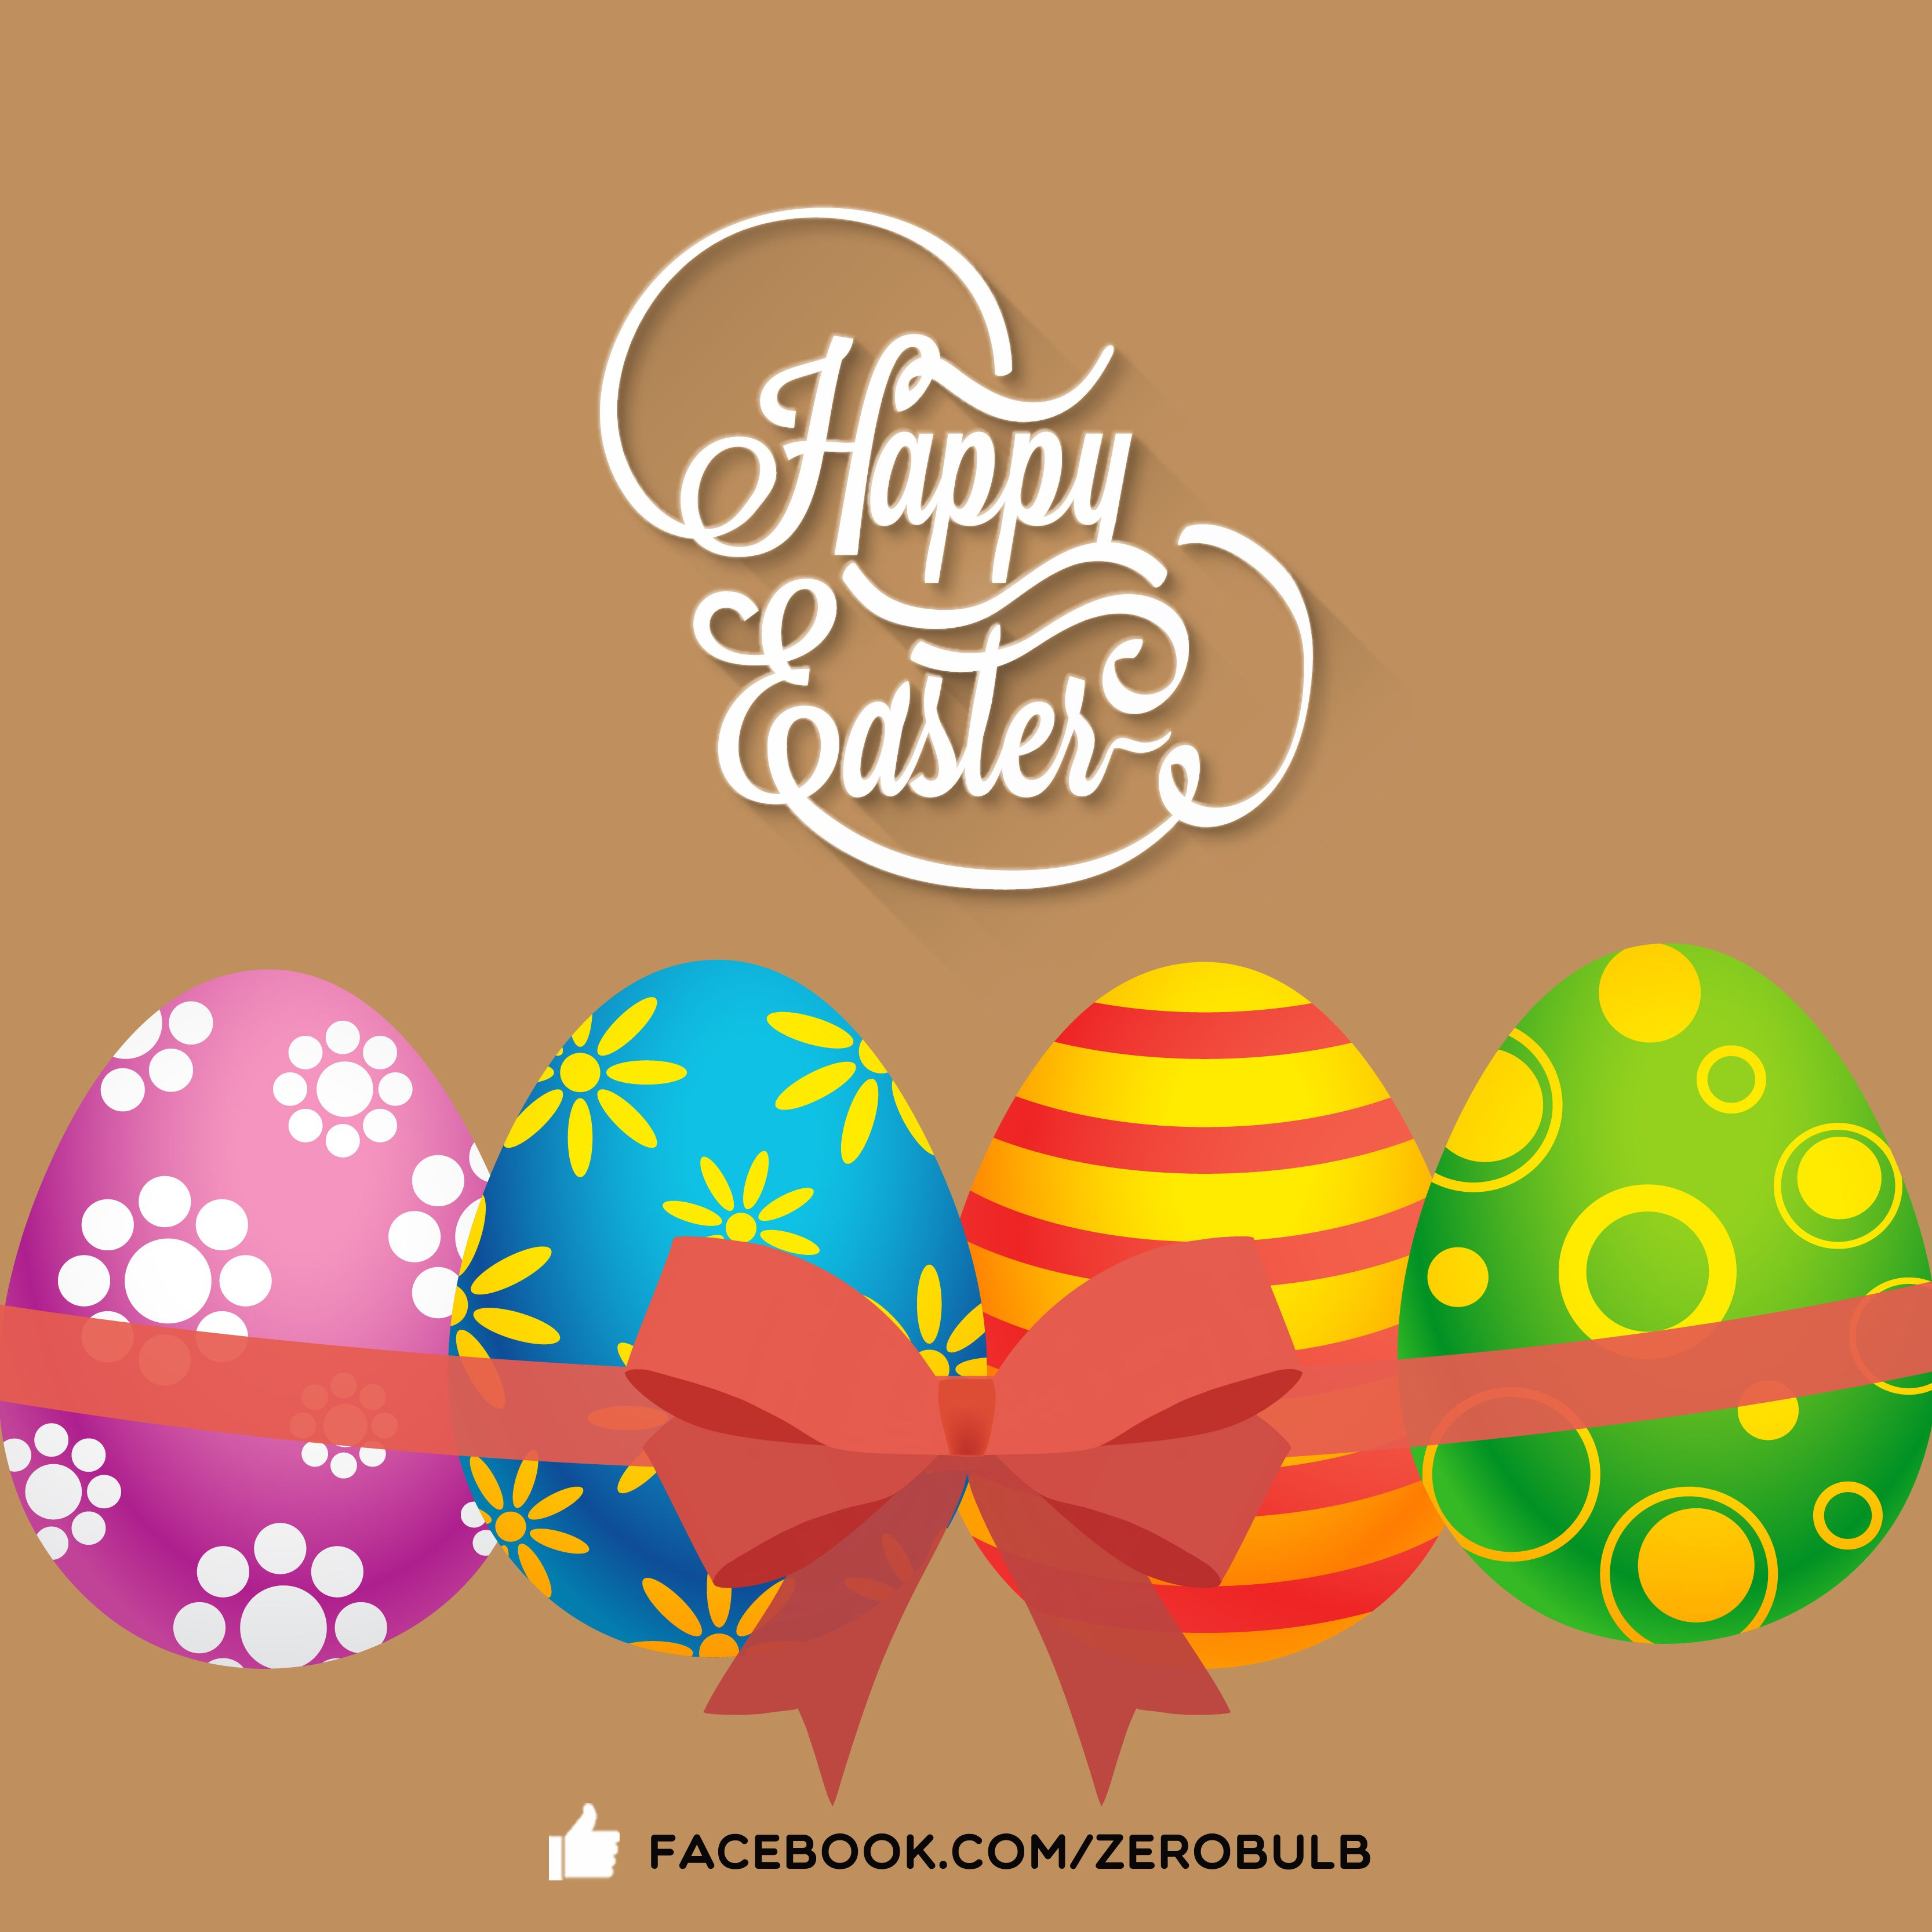 Happy easter wishes from team zerobulb visit httpwww happy easter wishes from team zerobulb visit httpzerobulb kristyandbryce Image collections